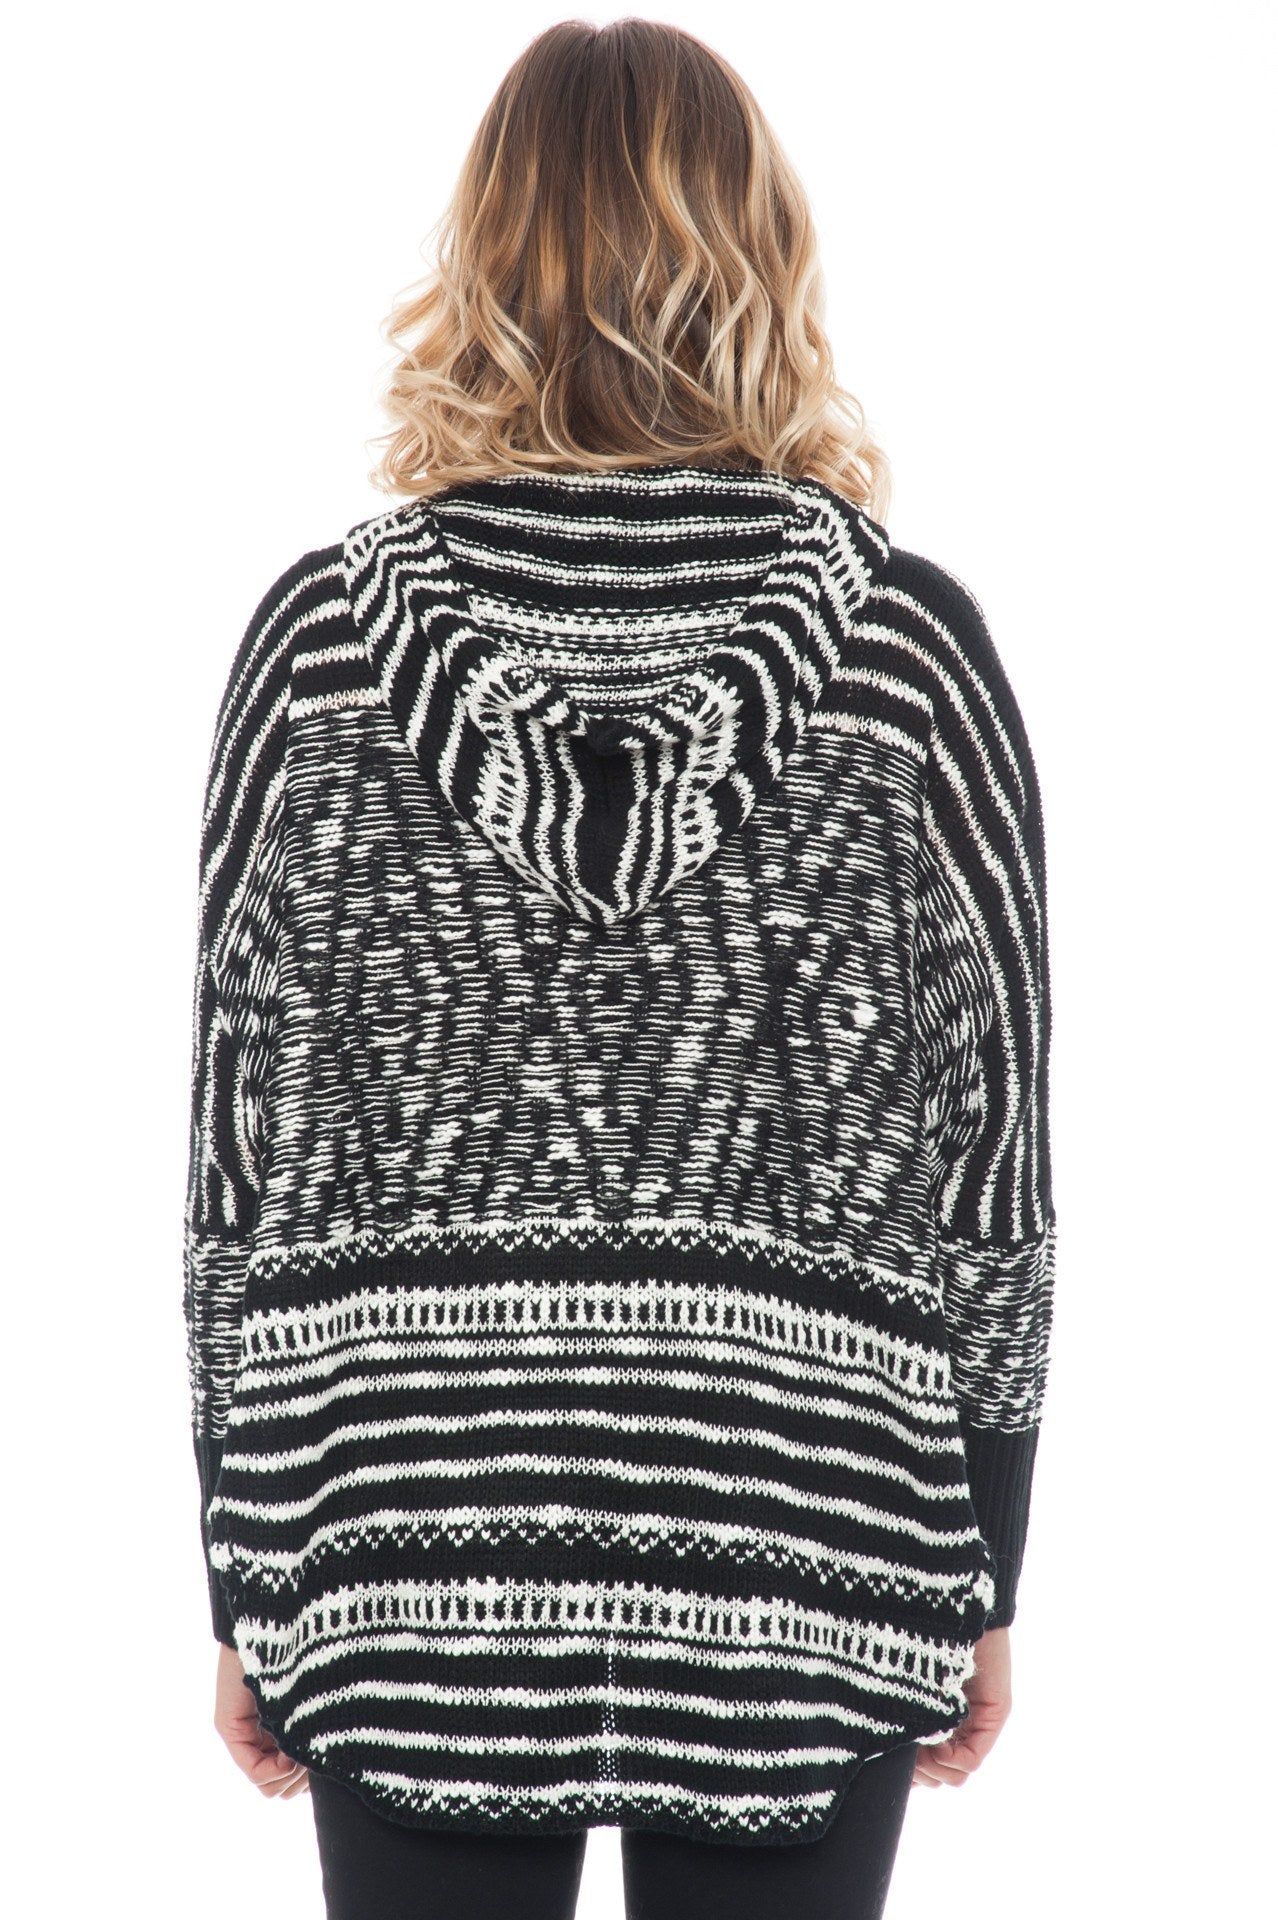 Sweater - Hooded Dolman Knit Top By Paper Crane (Final Sale)